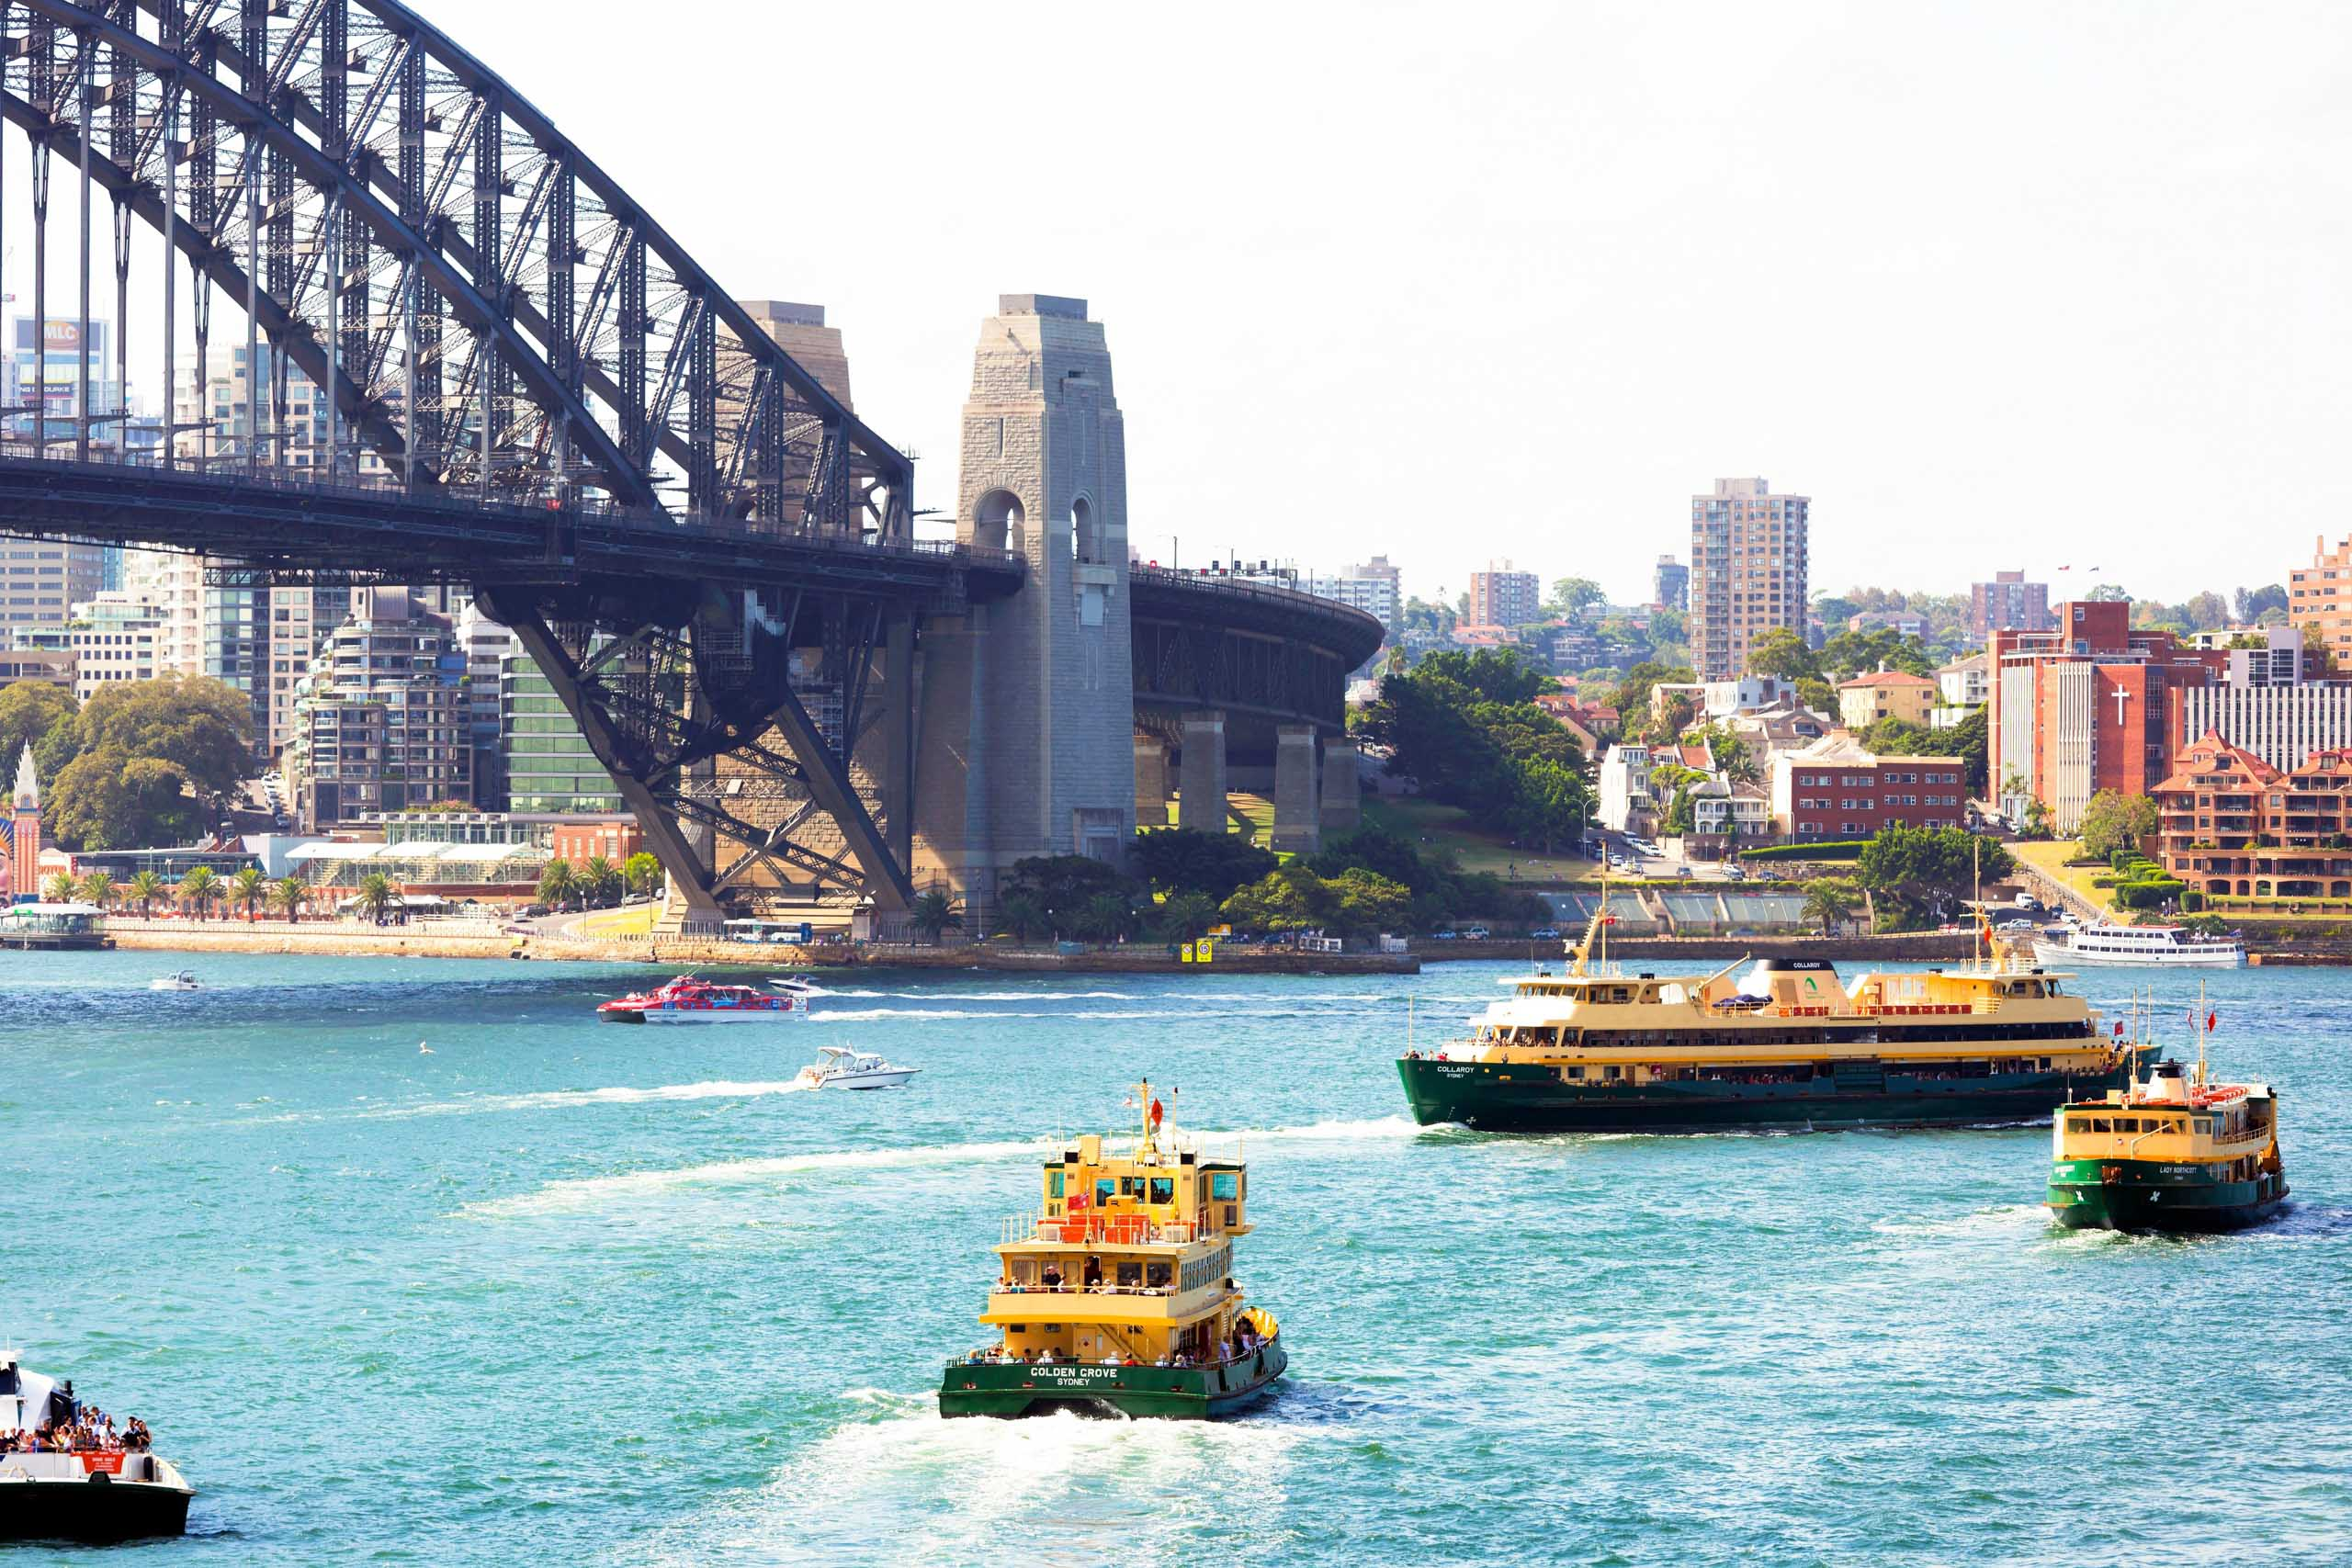 Sydney ferries in the Harbour